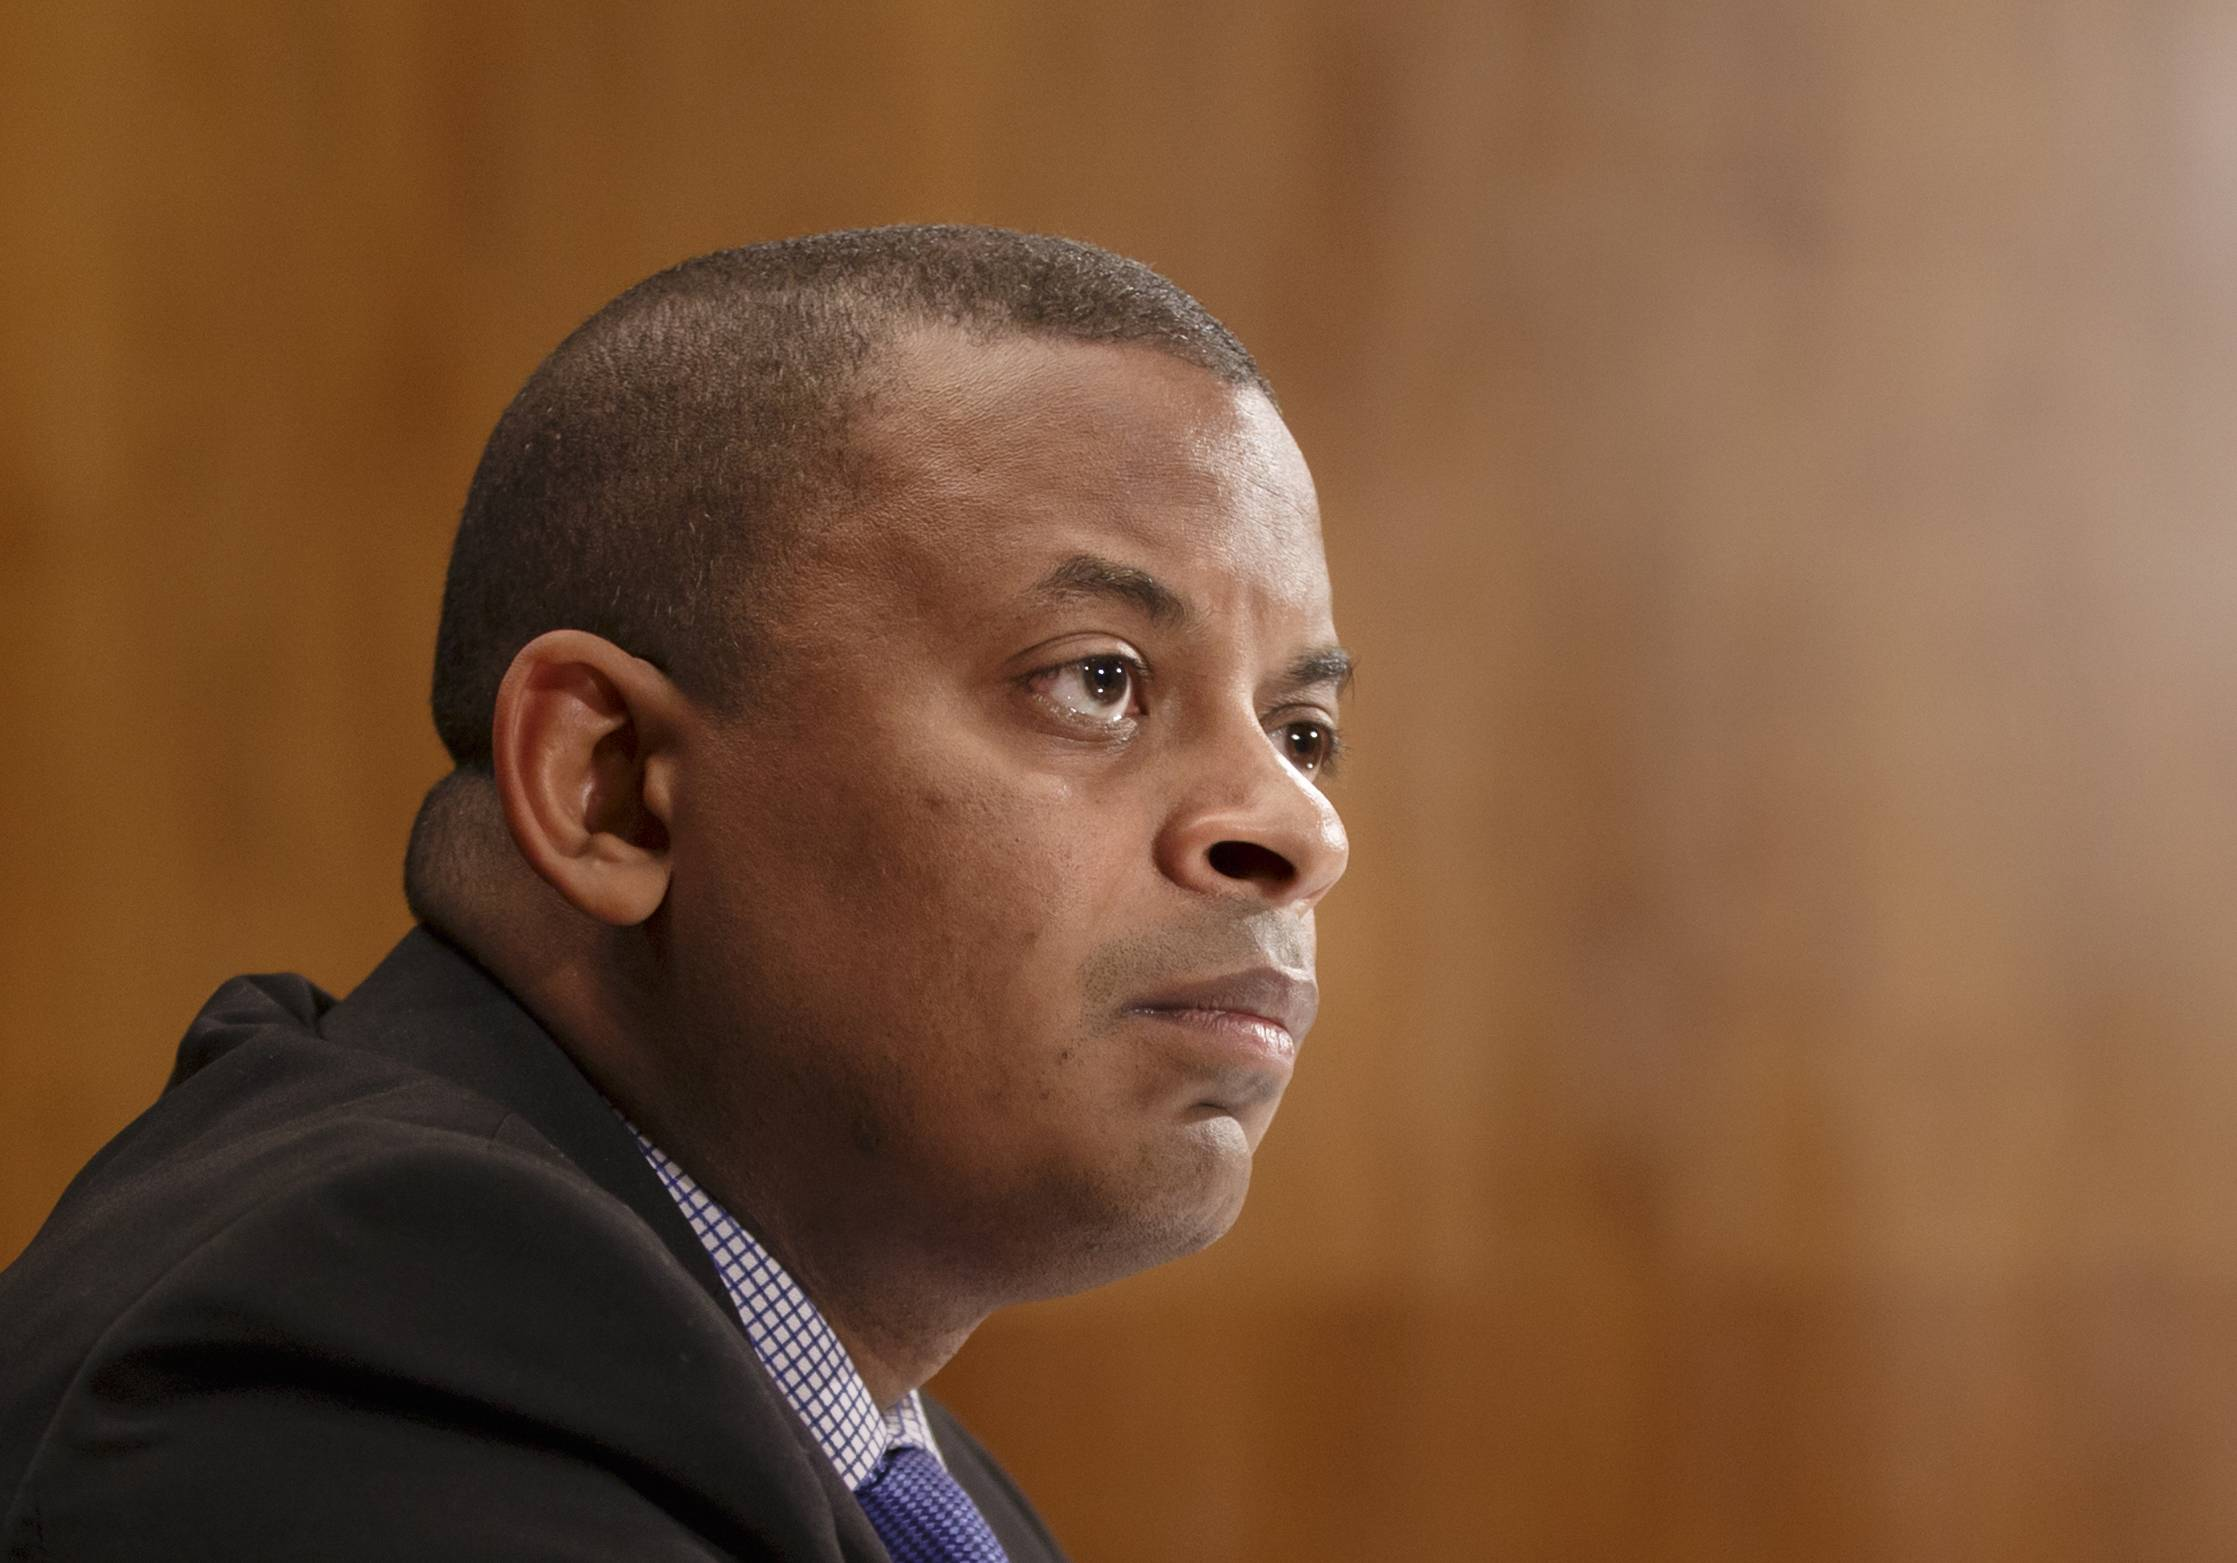 Transportation Secretary Anthony Foxx said Tuesday that action is urgently needed because the federal Highway Trust Fund is expected to run dry by late August. He said that unless Congress acts to shore up the fund, transportation aid to states will be held up and workers laid off construction sites across the country.